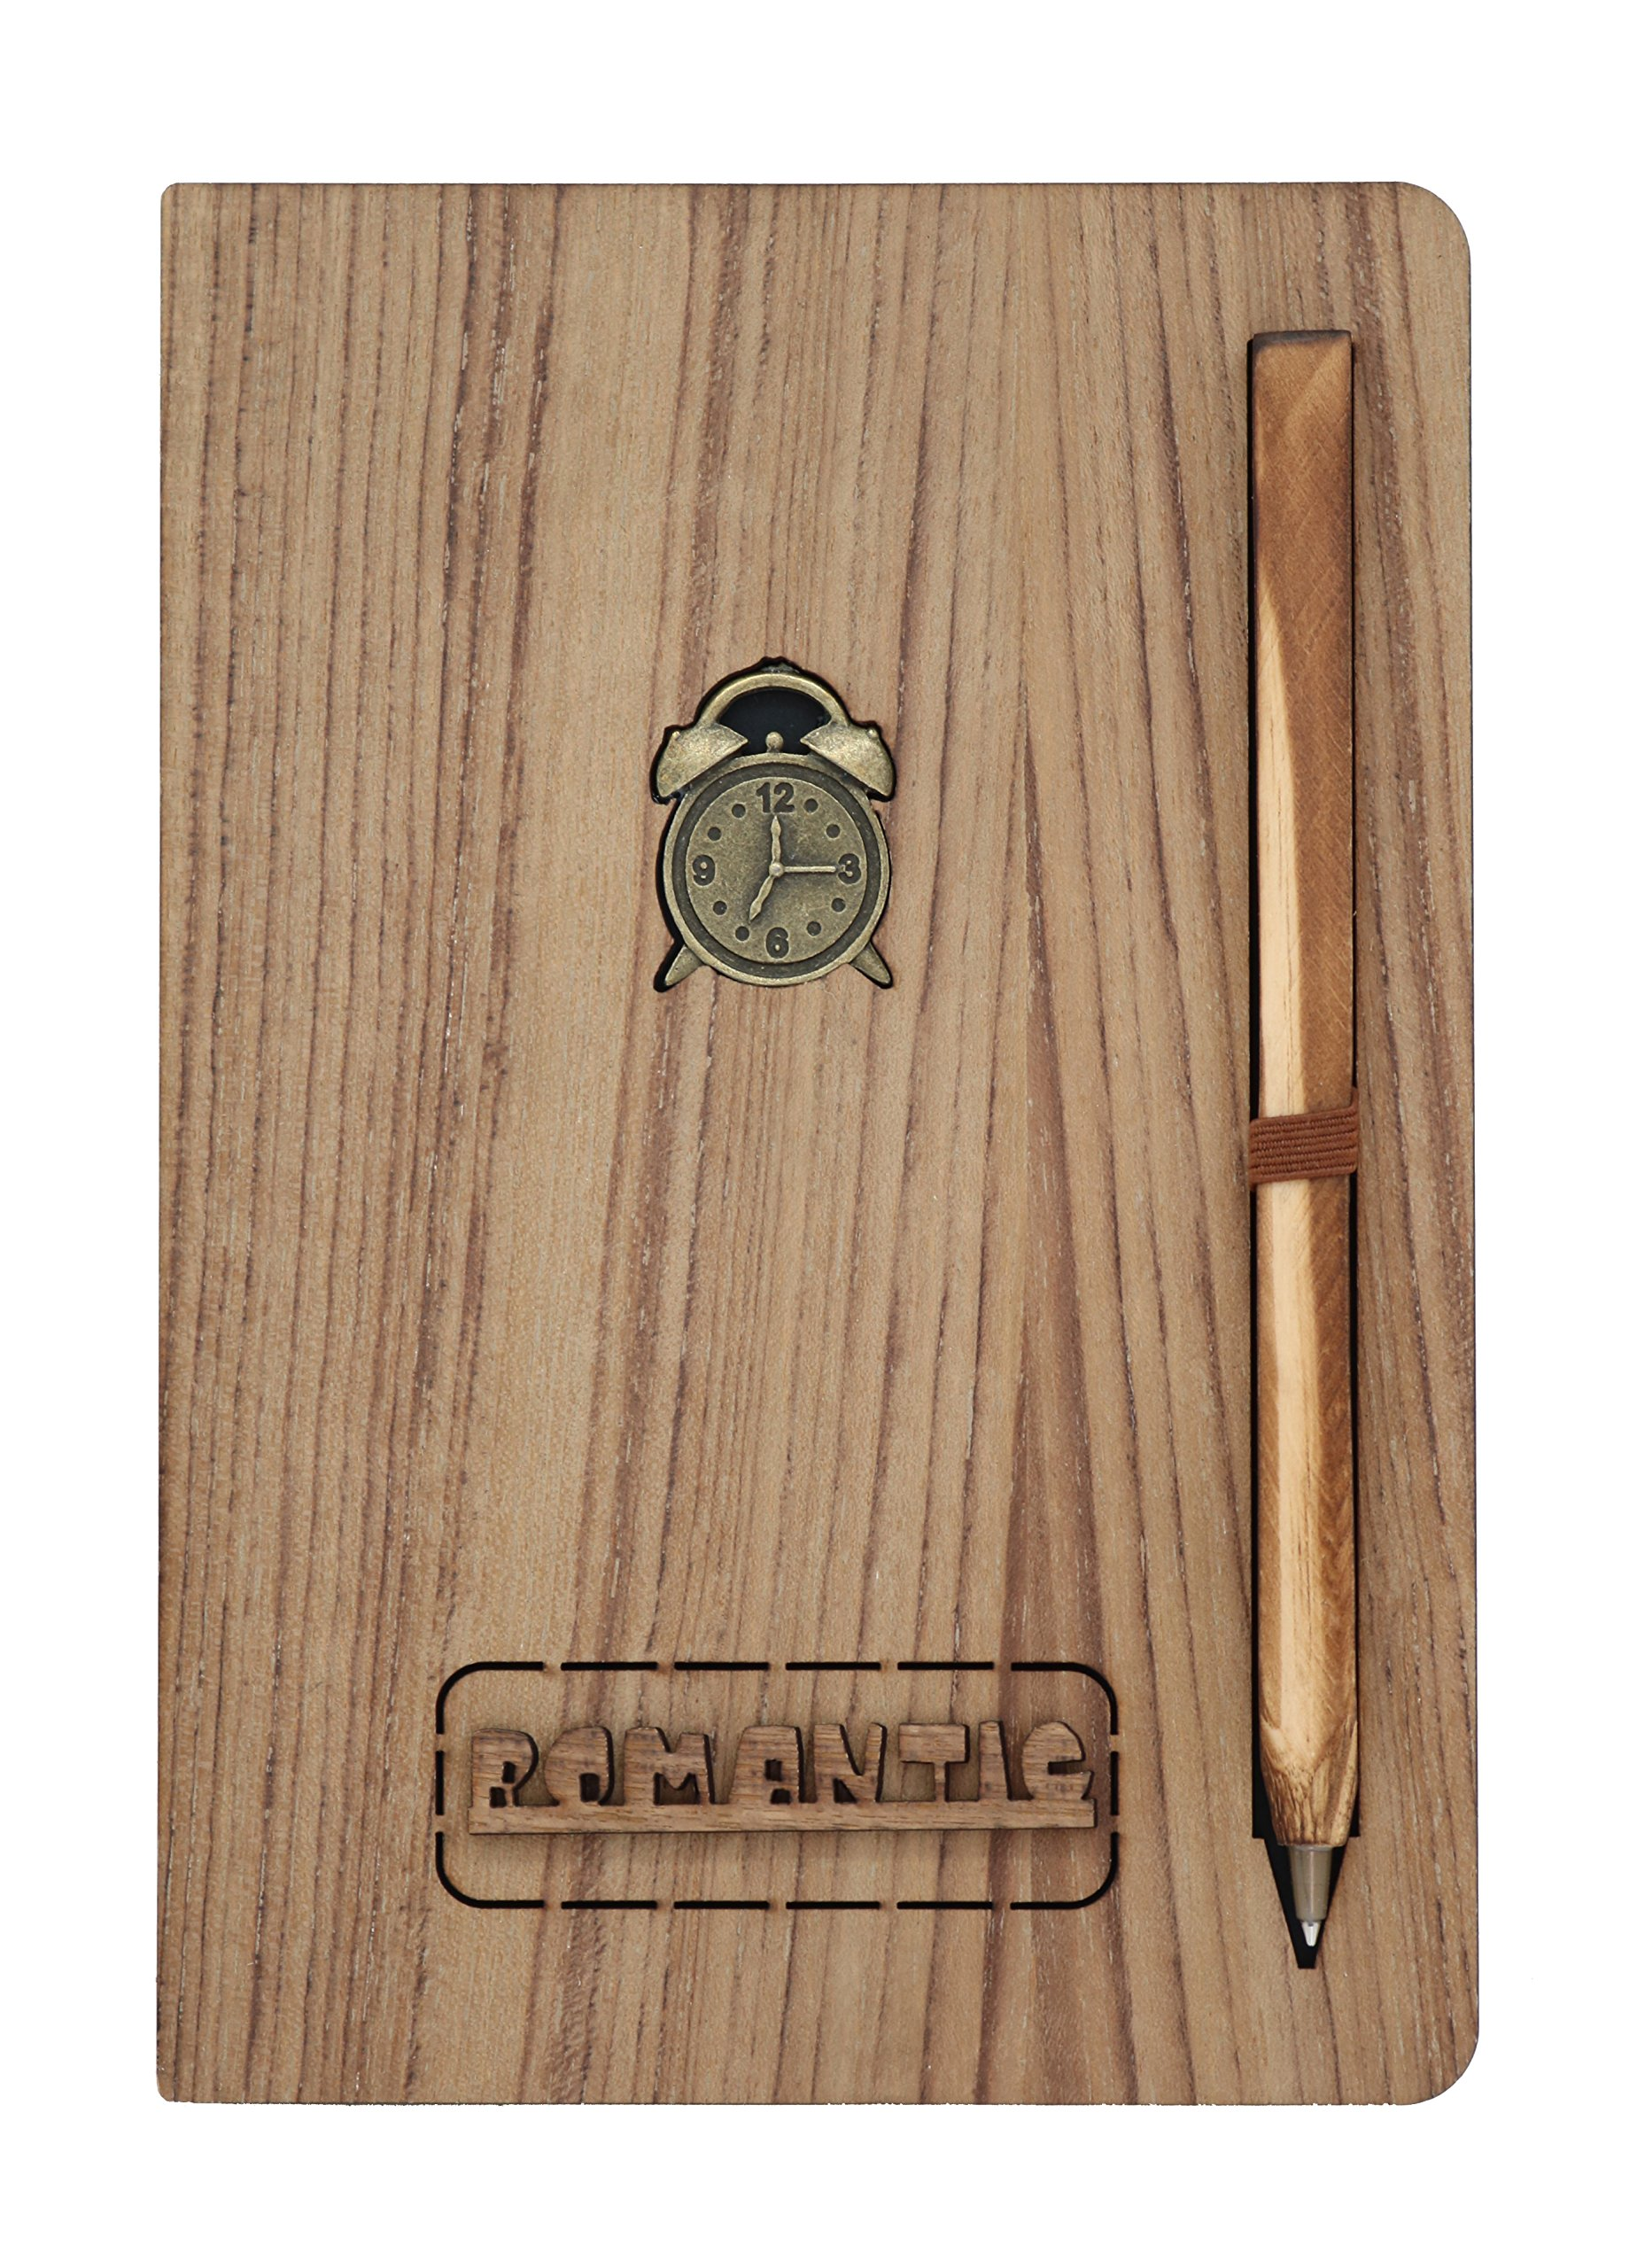 Wooden Notebook with Attached Pen - Natural Wood Series   Unique Wood-Covered Notebook & Pen Set with Bronze Crests   No Line, White/Brown Pages with Designs (Clock)